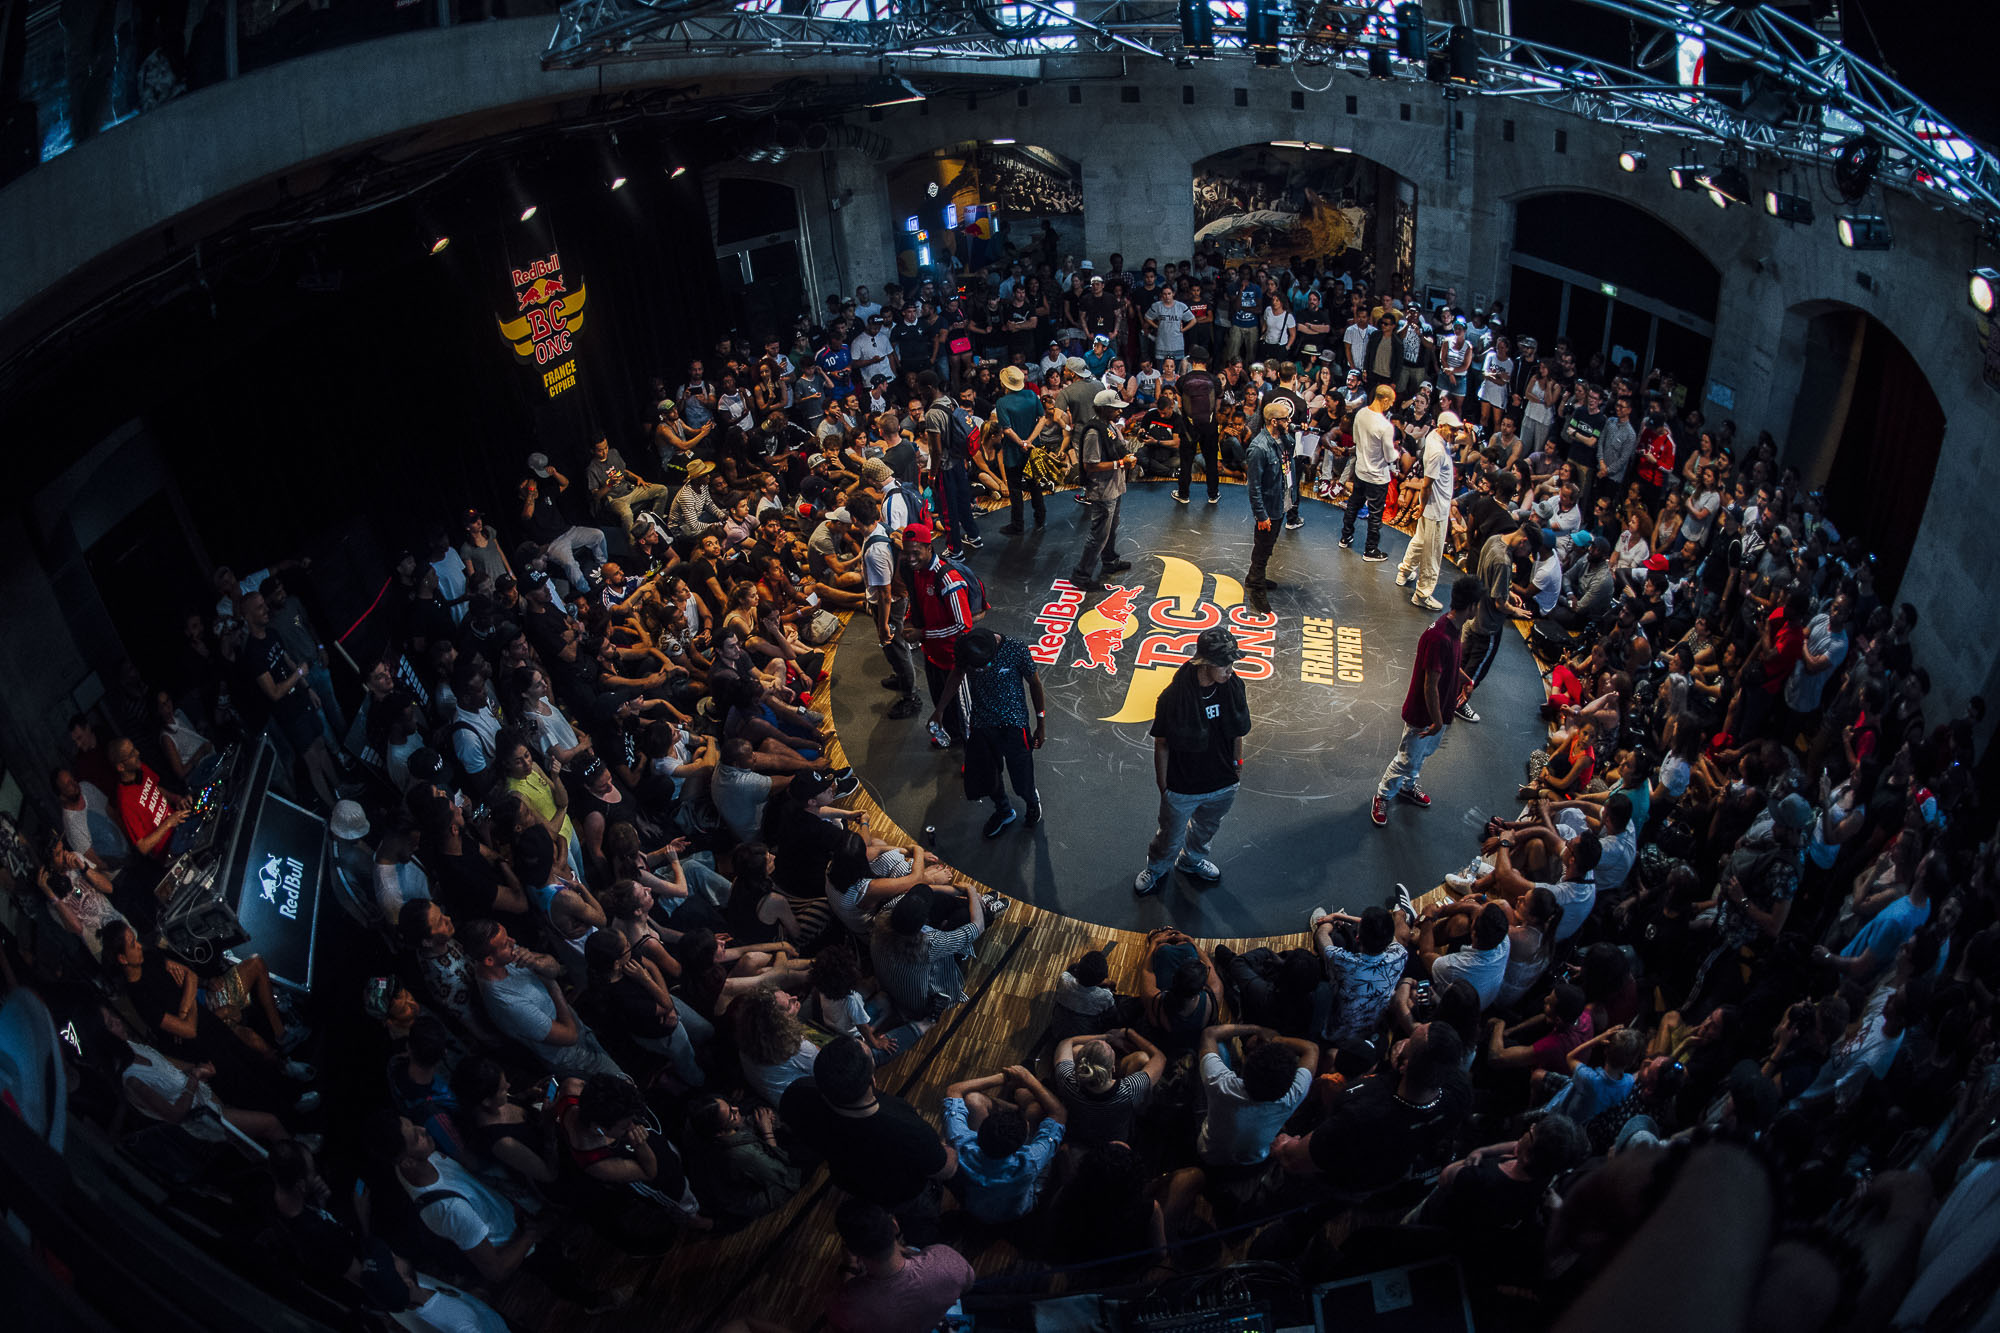 The Top 16 Bboys getting introduced before the competition at the WIP Villette during the Red Bull BC One France Cypher Final in Paris, France on July 10th 2016.